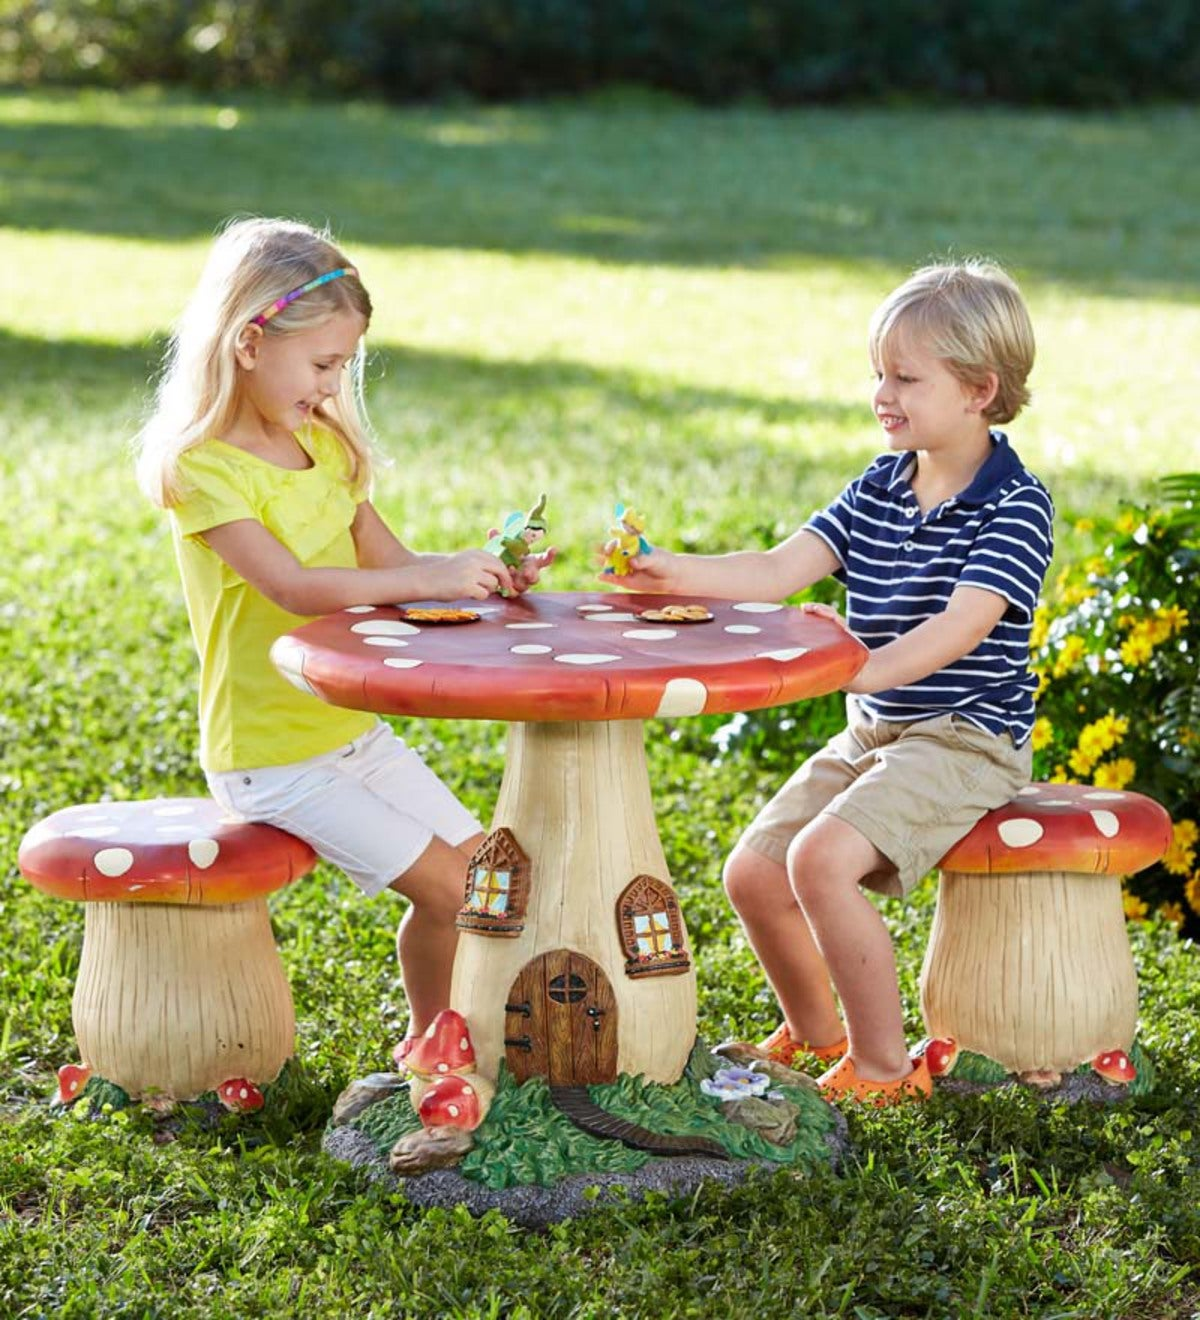 Fairy-Tale Mushroom Furniture